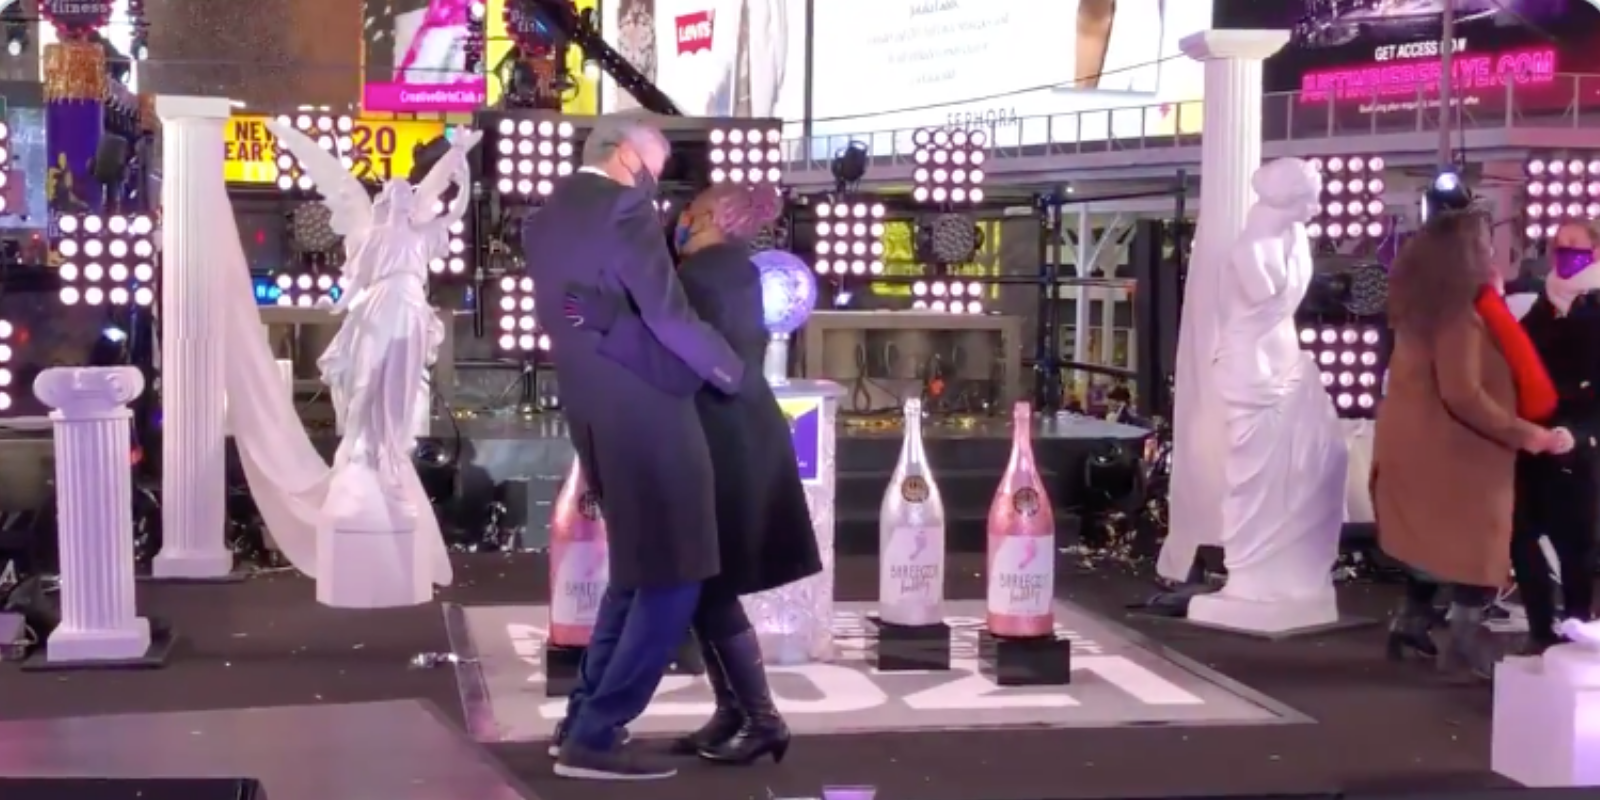 FLASHBACK: Bill de Blasio tells New Yorkers NOT to go to Times Square for New Year's Eve